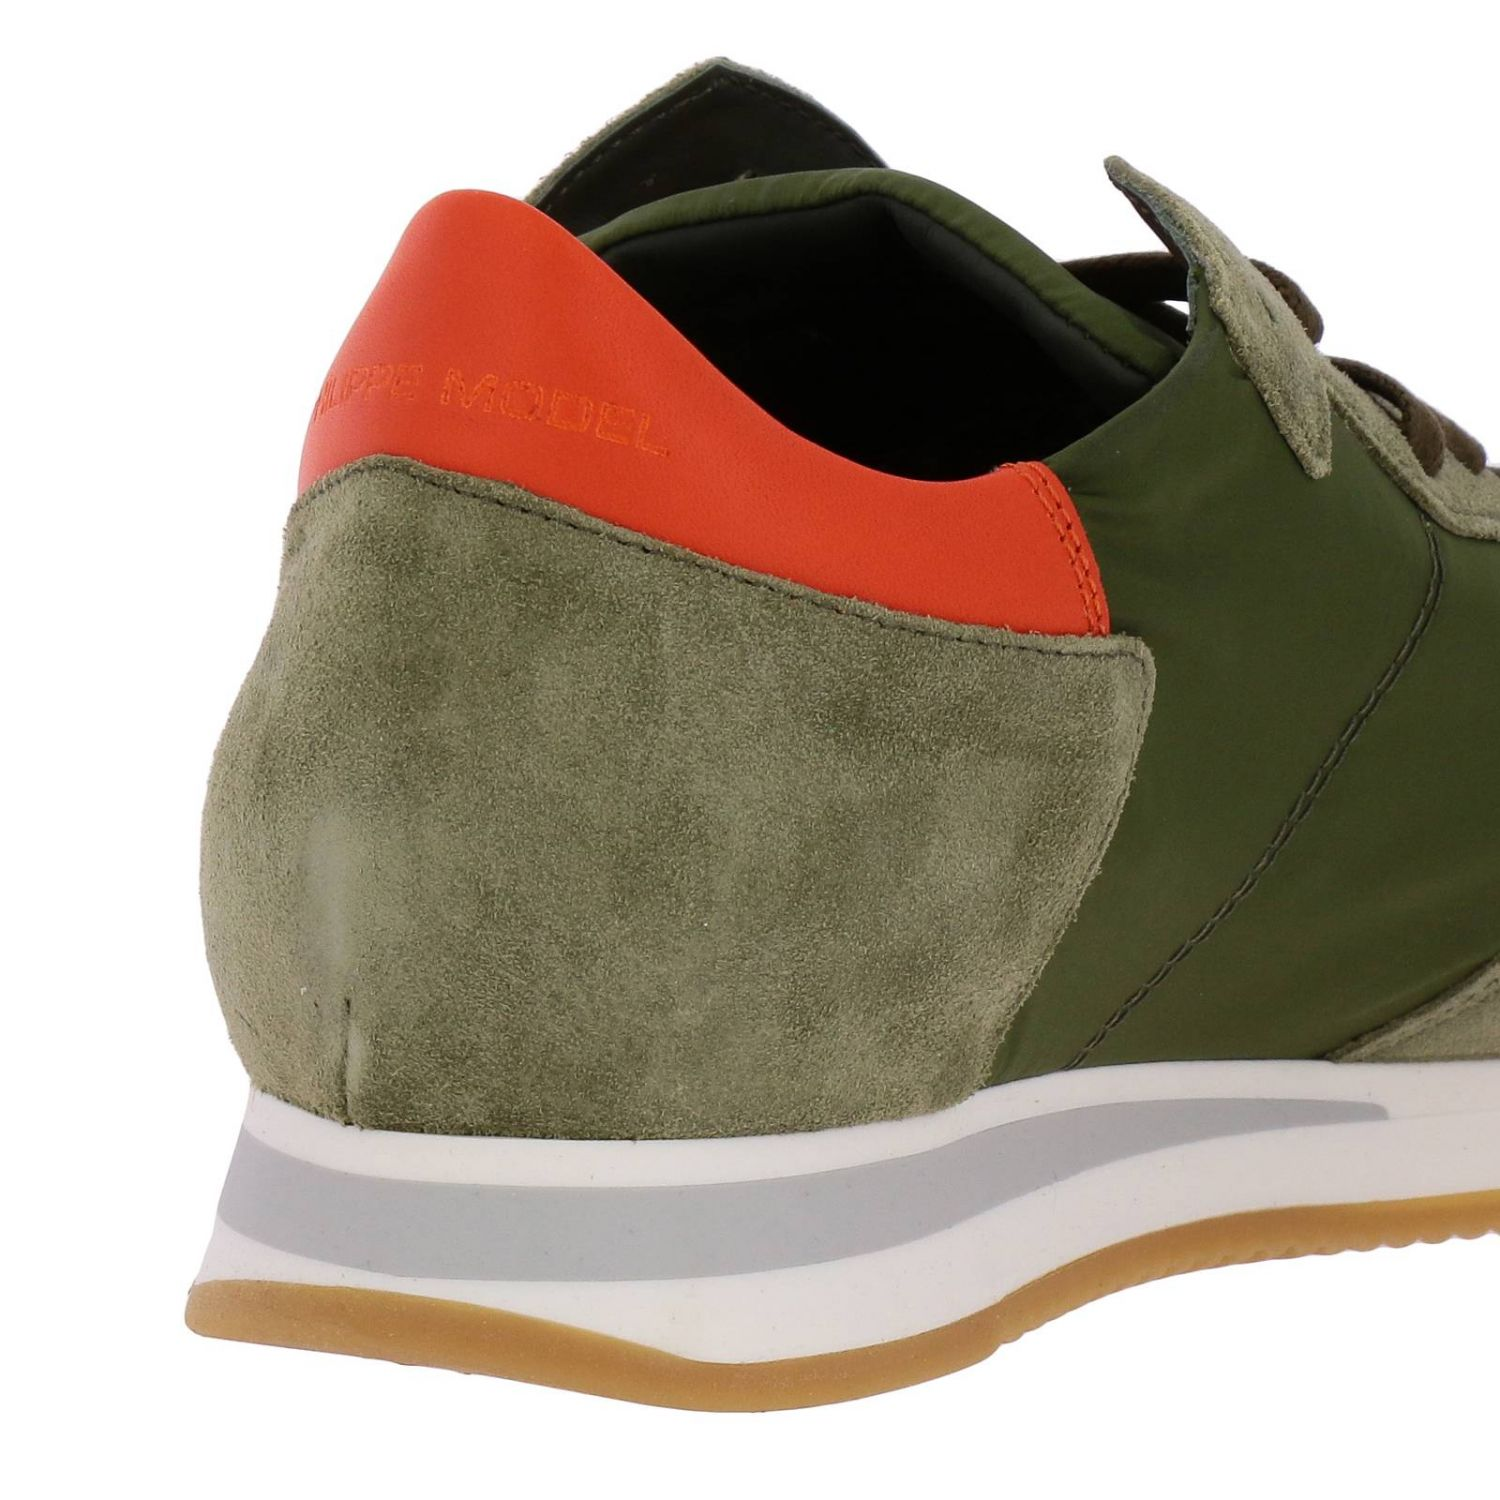 Shoes men Philippe Model military 4